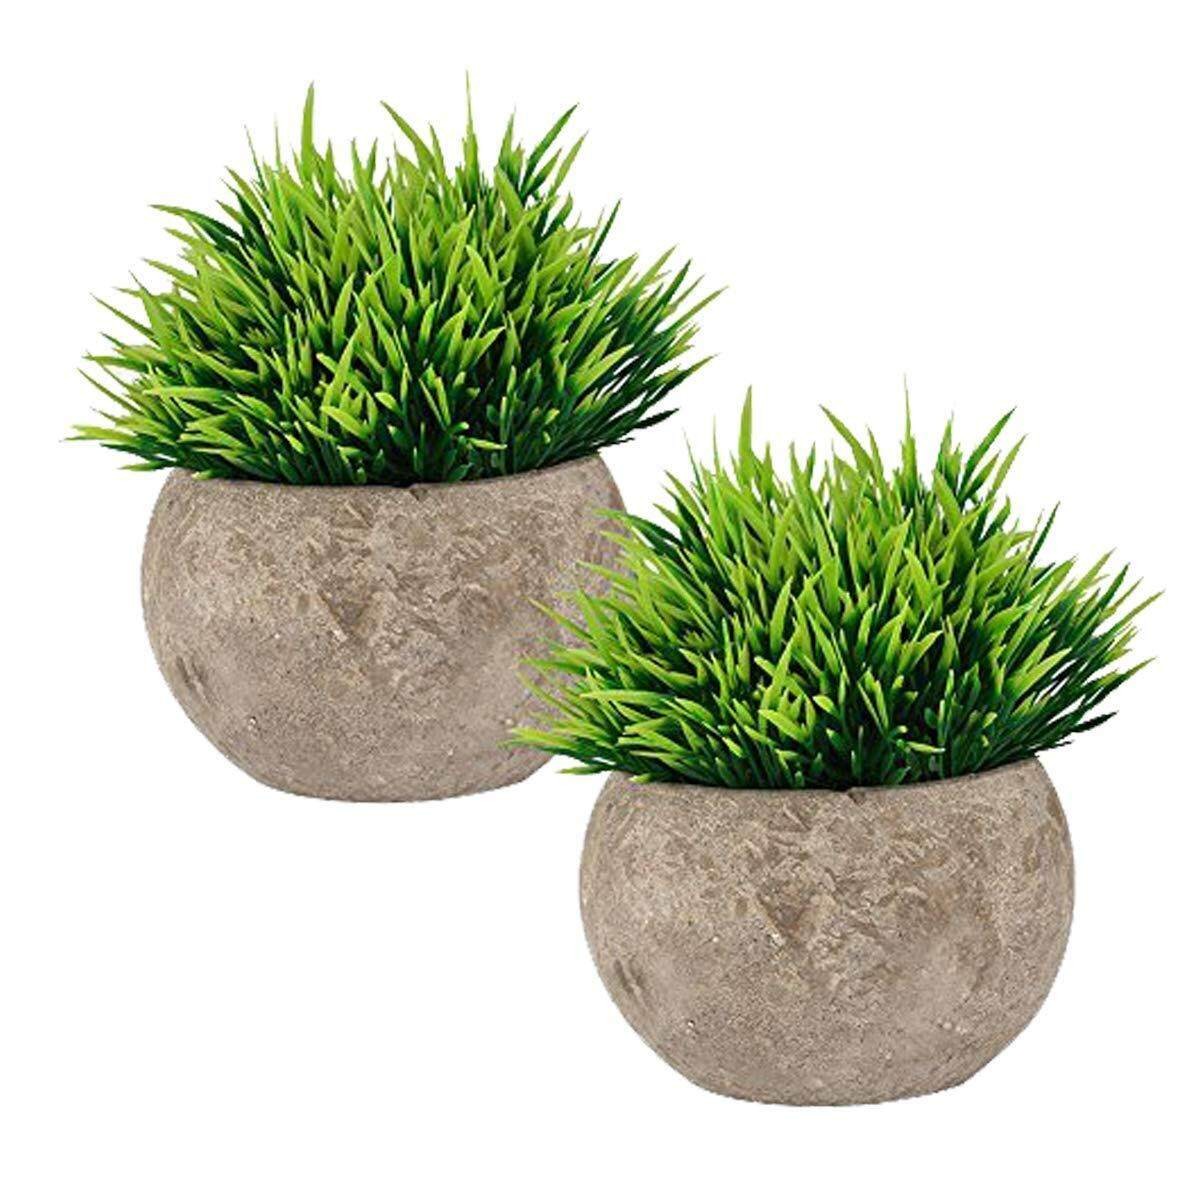 Fake Plant for Bathroom/Home Decor, Small Artificial Faux Greenery for House Decorations (Potted Plants) Free Shipping